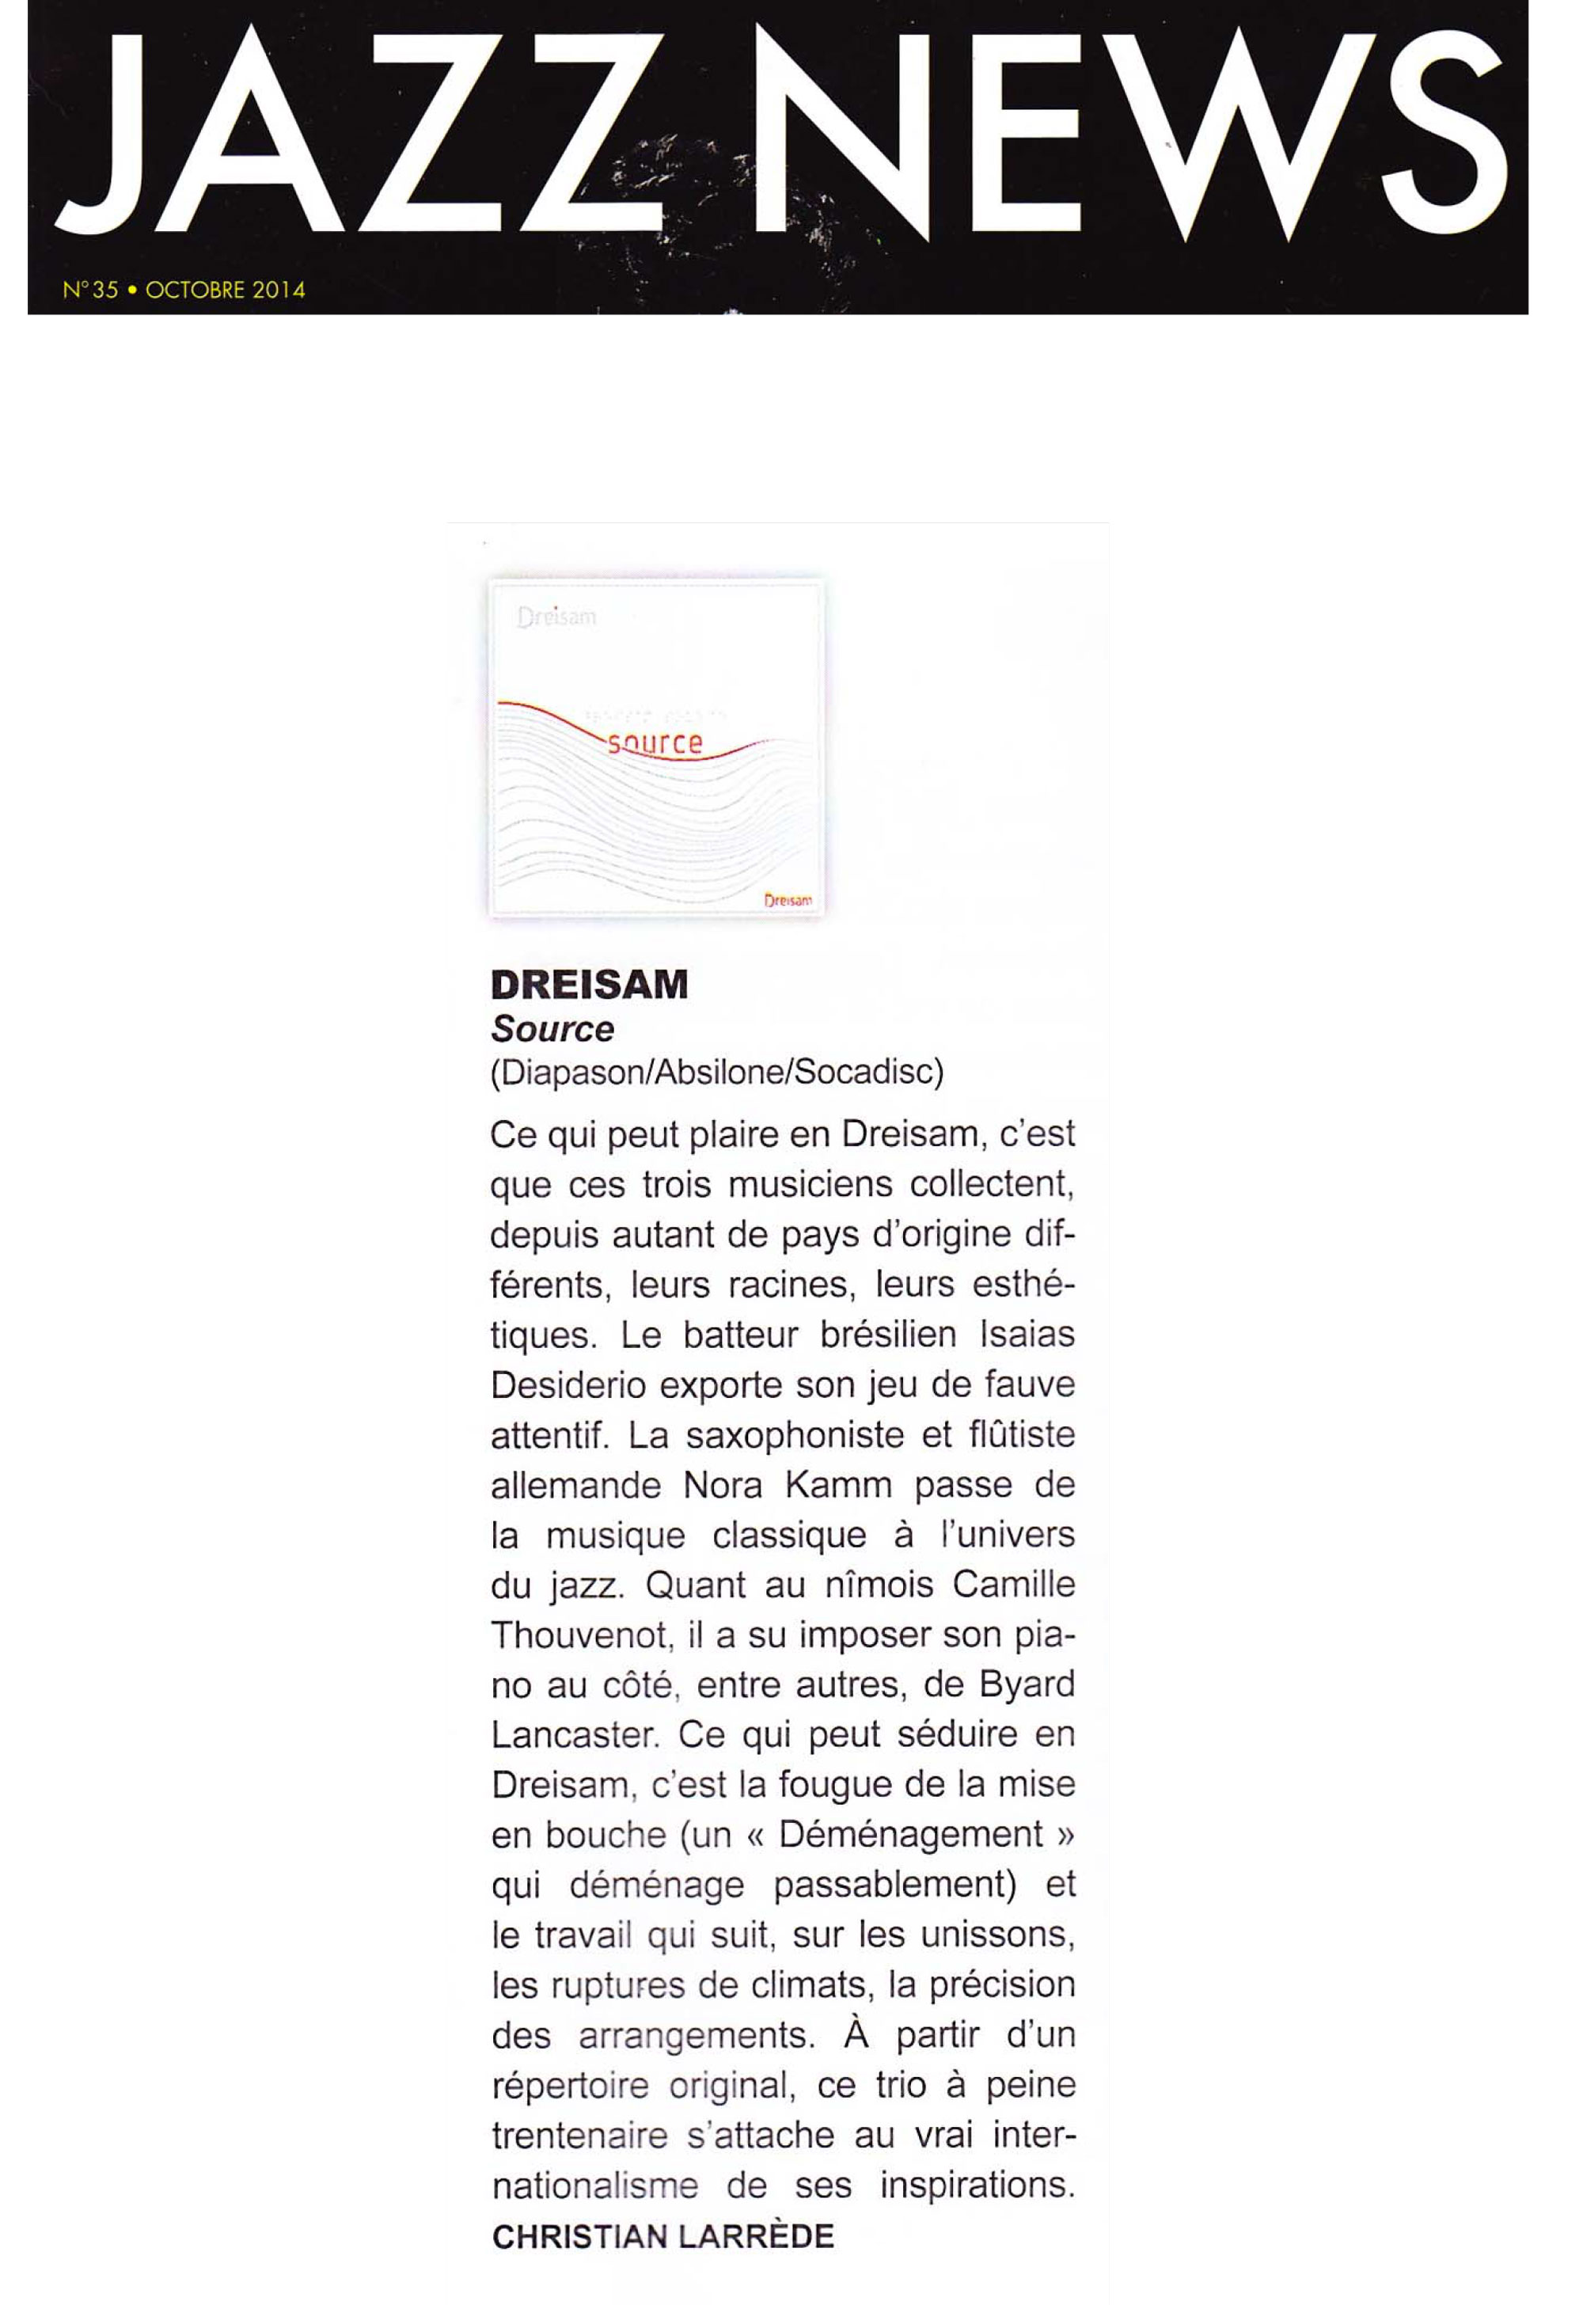 Jazz-News-octobre-2014_Dreisam